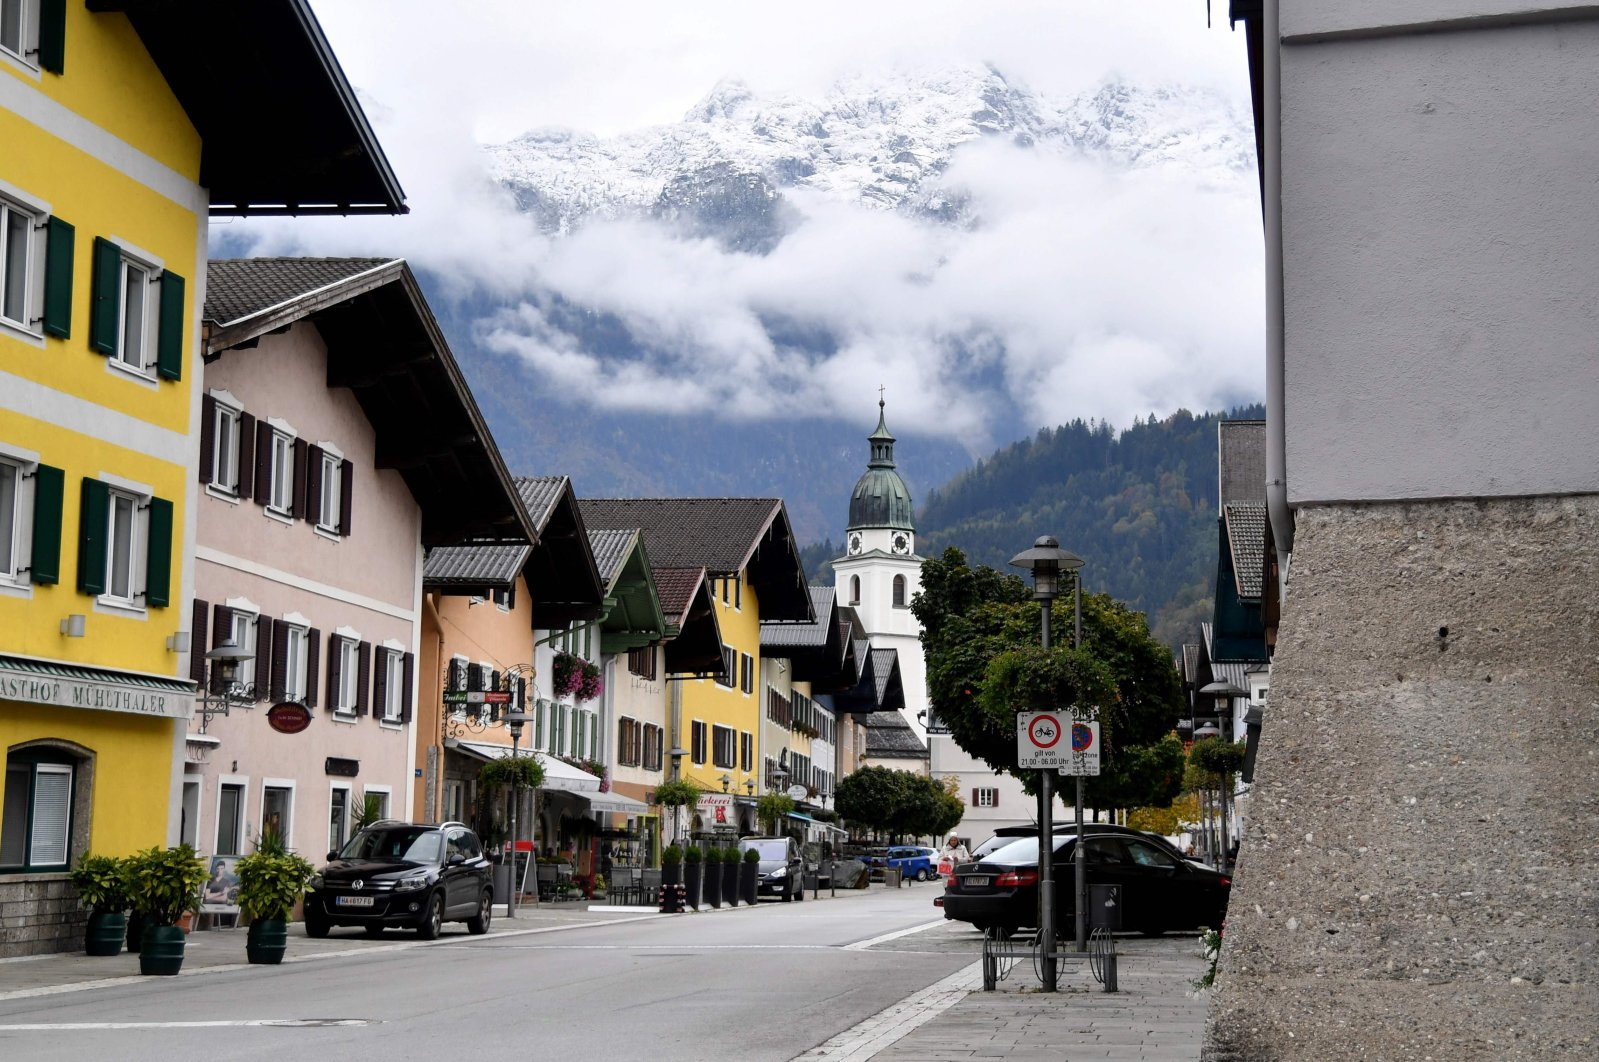 The market square is empty during a lockdown for the ongoing coronavirus pandemic in the commune of Kuchl, near Salzburg, Austria, Oct. 15, 2020. (AFP Photo)